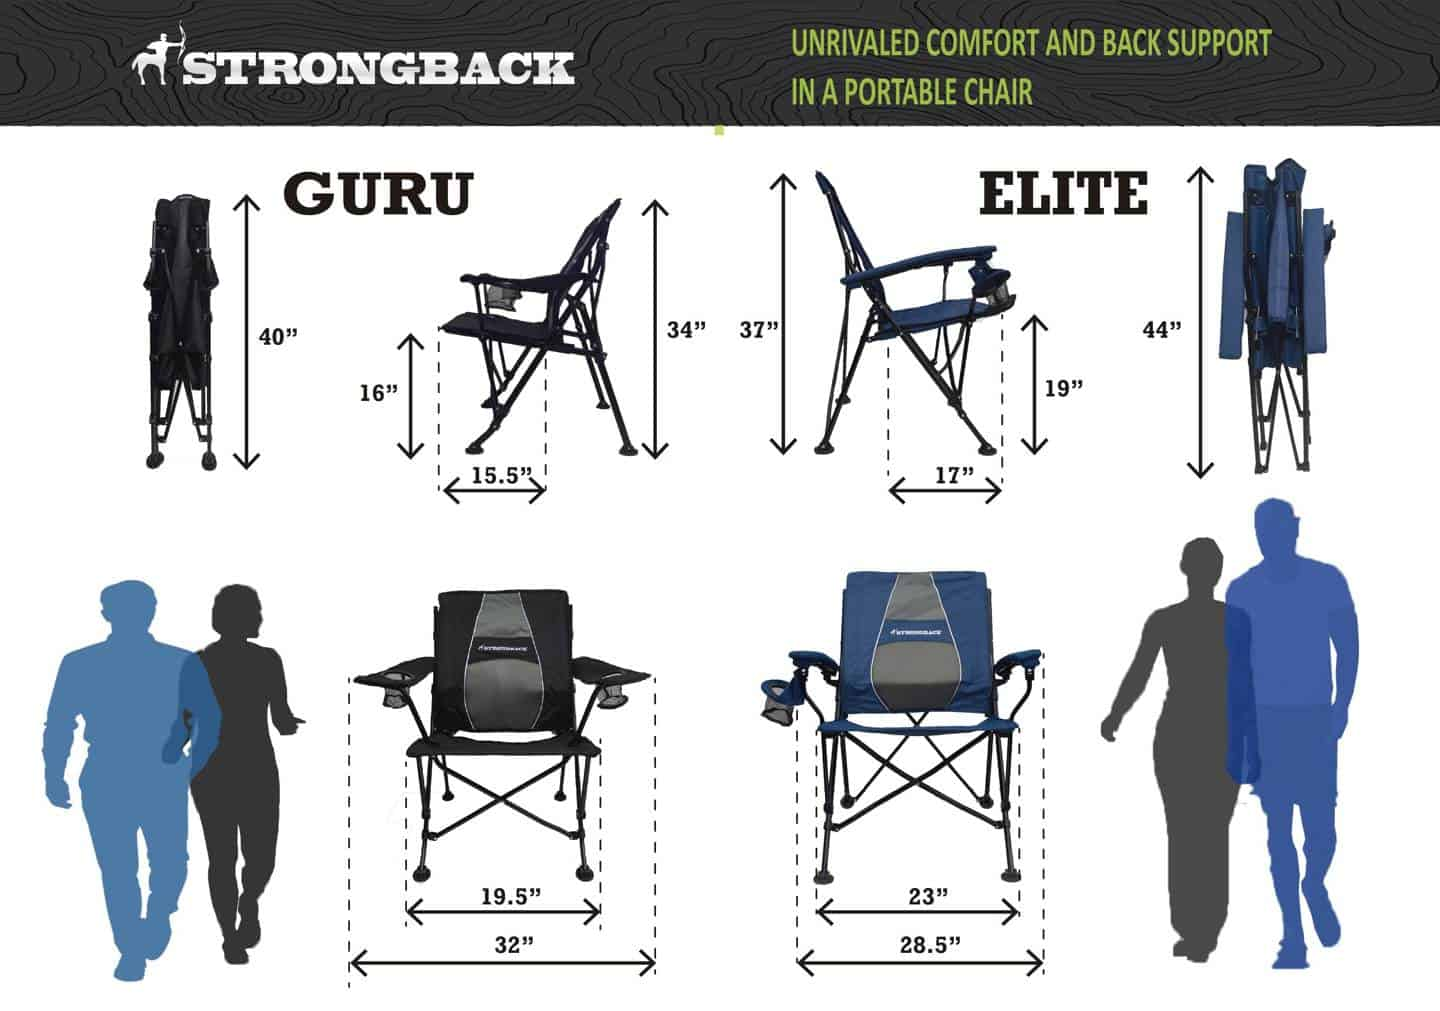 Compare Strongback Guru to Strongback Elite